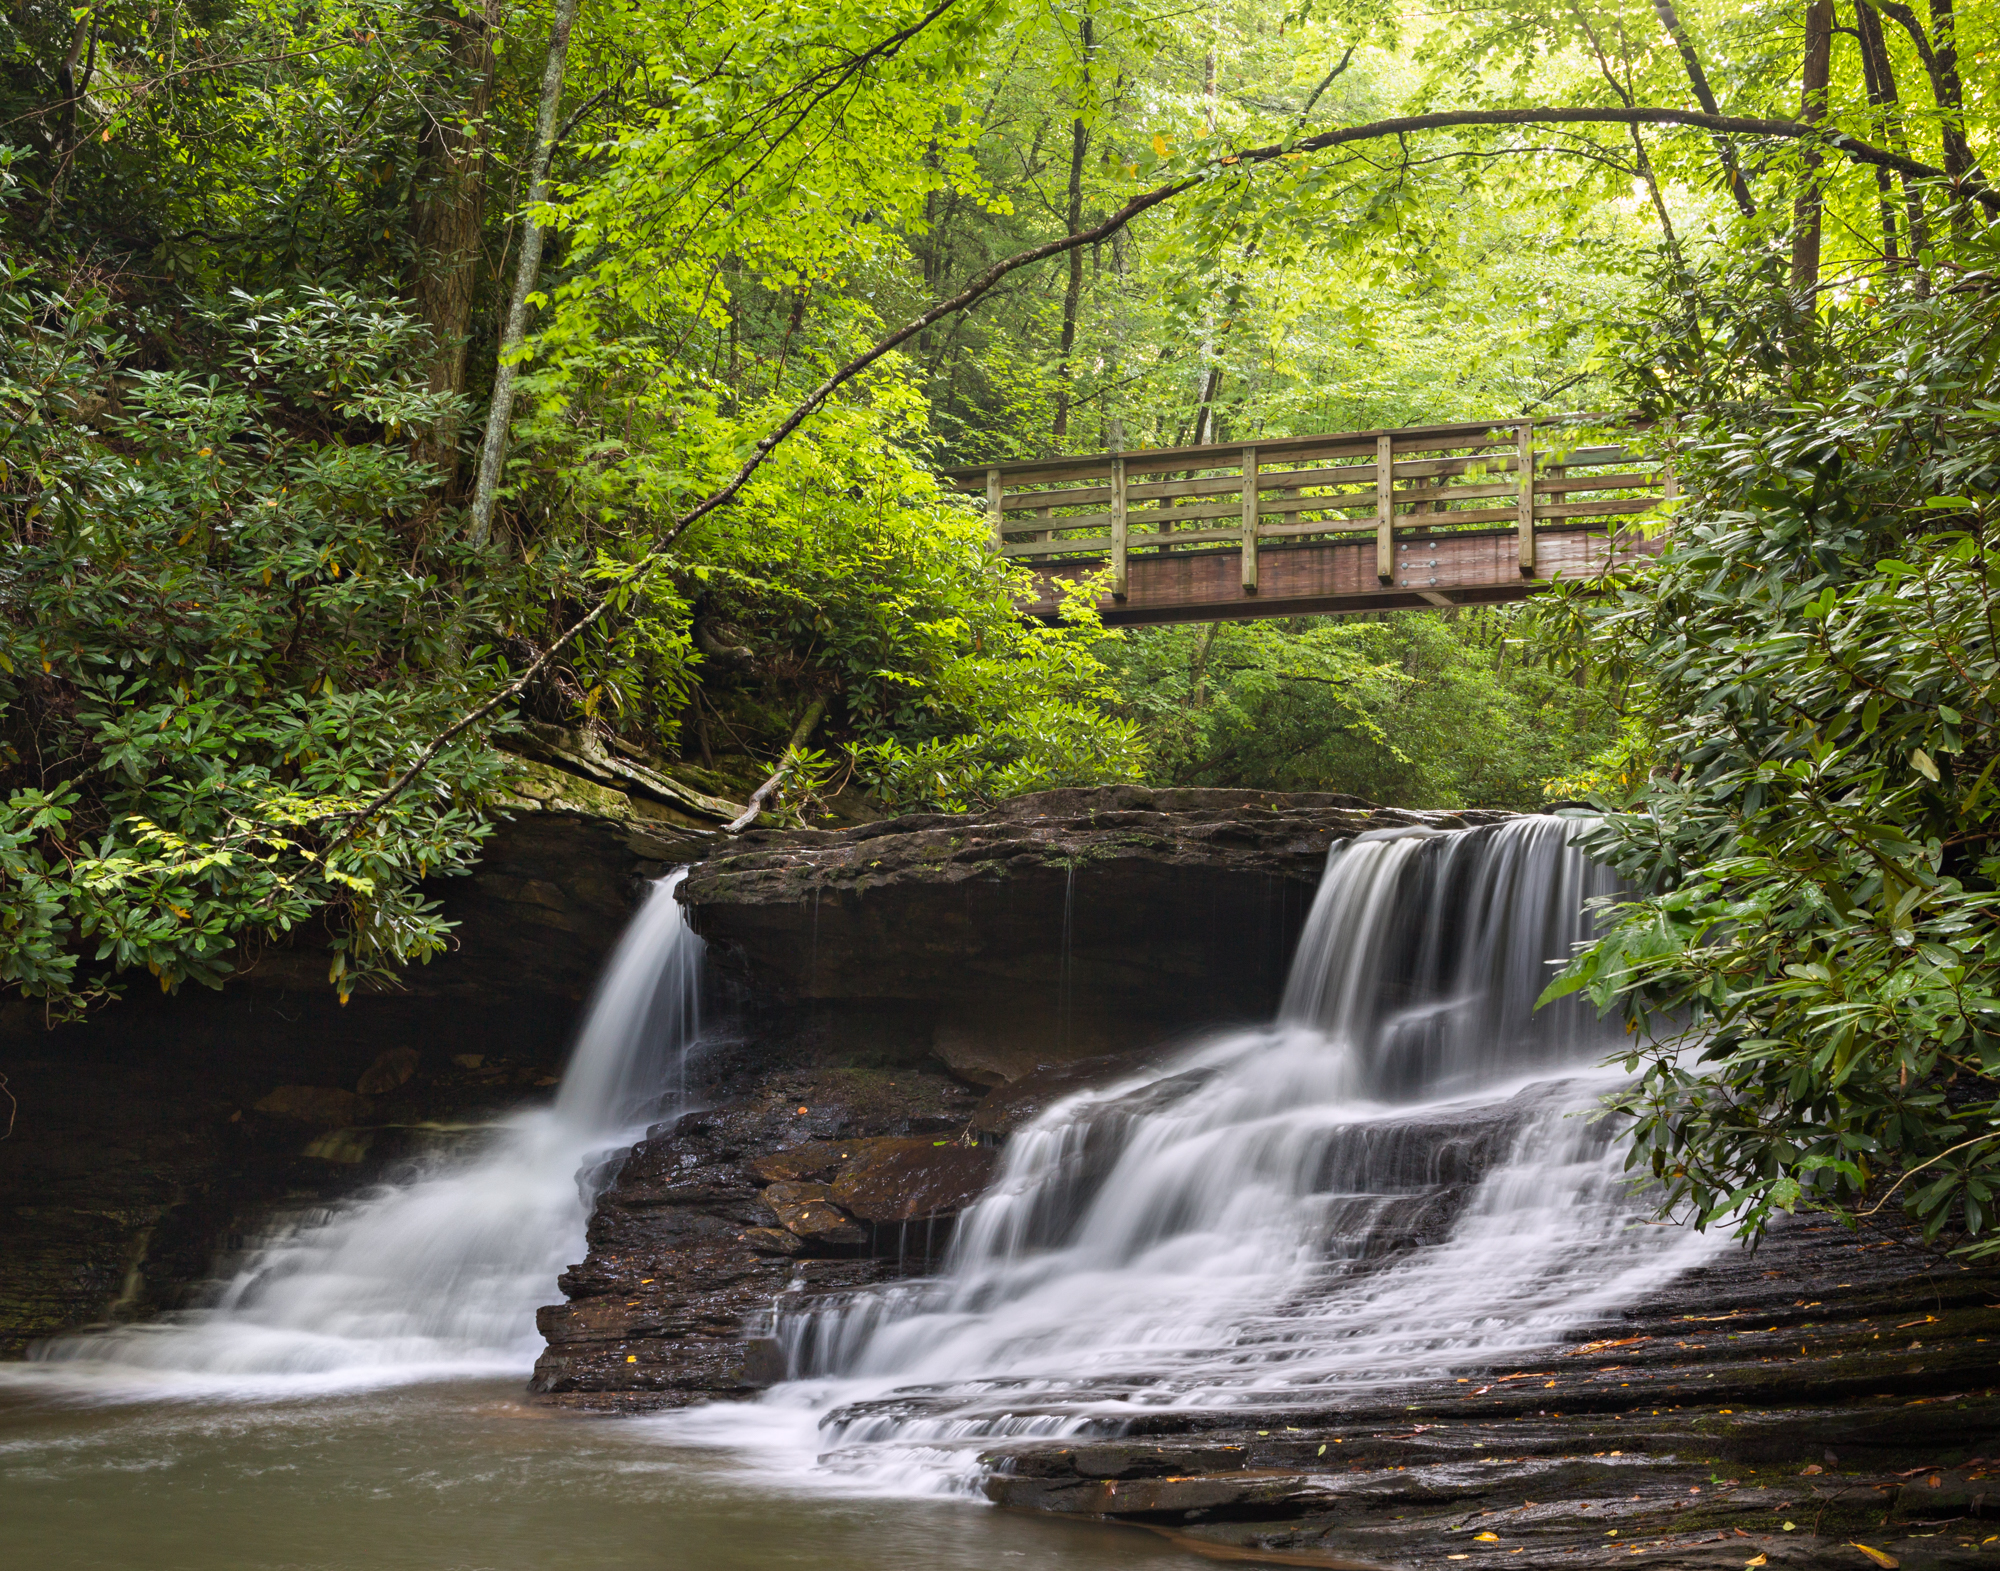 22. Falls of Little Stony Creek, Jefferson National Forest, Virginia